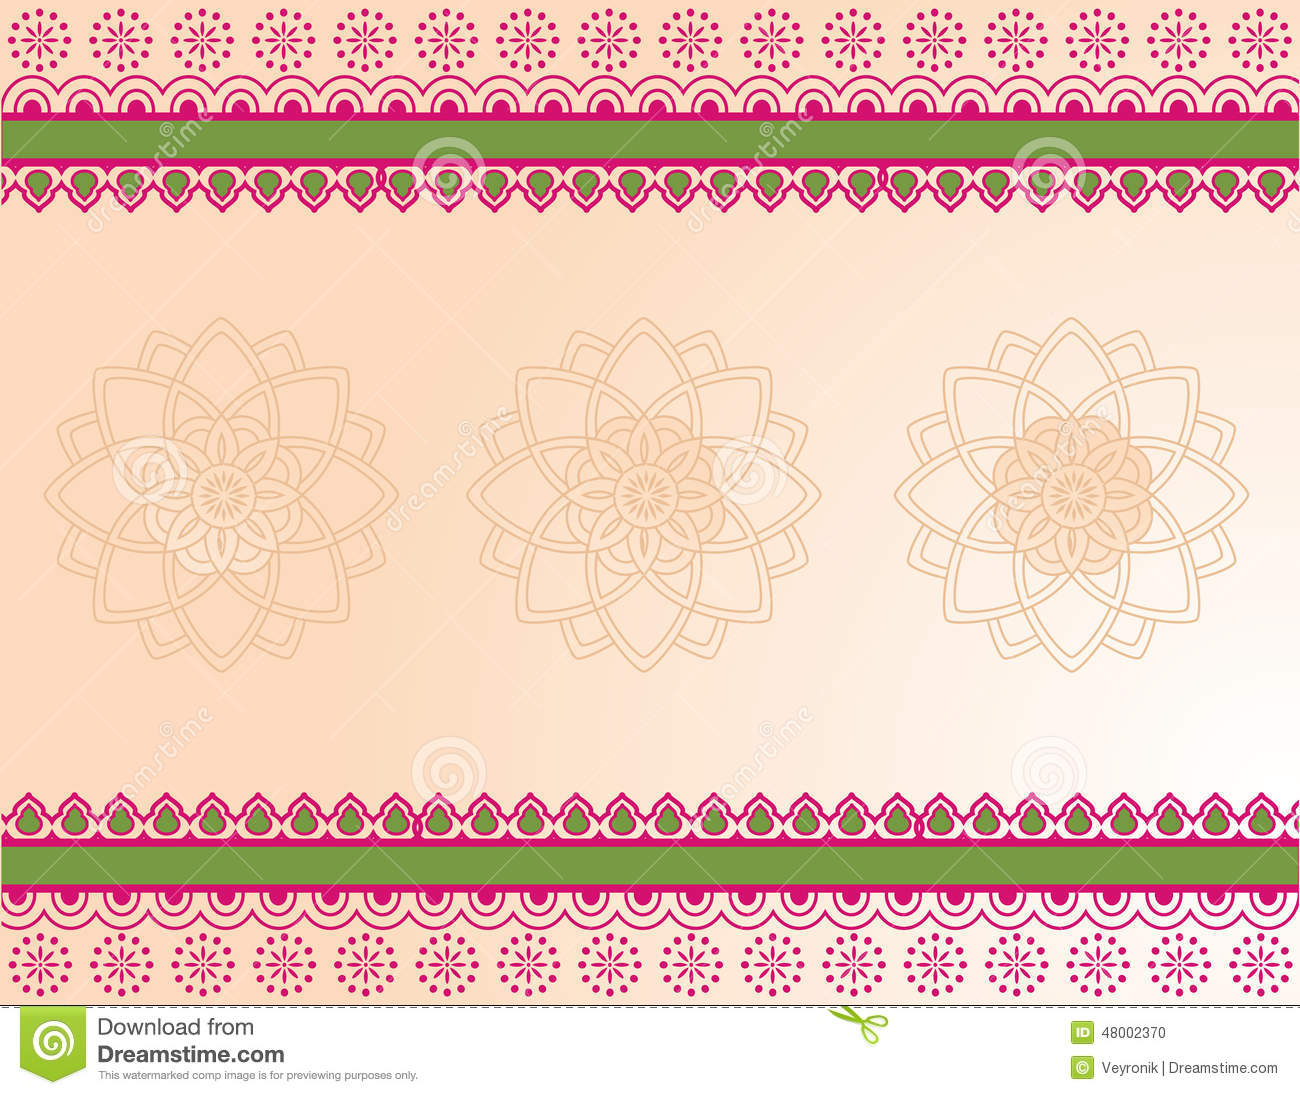 Pink And Green Indian Henna Banner Stock Vector - Image ...